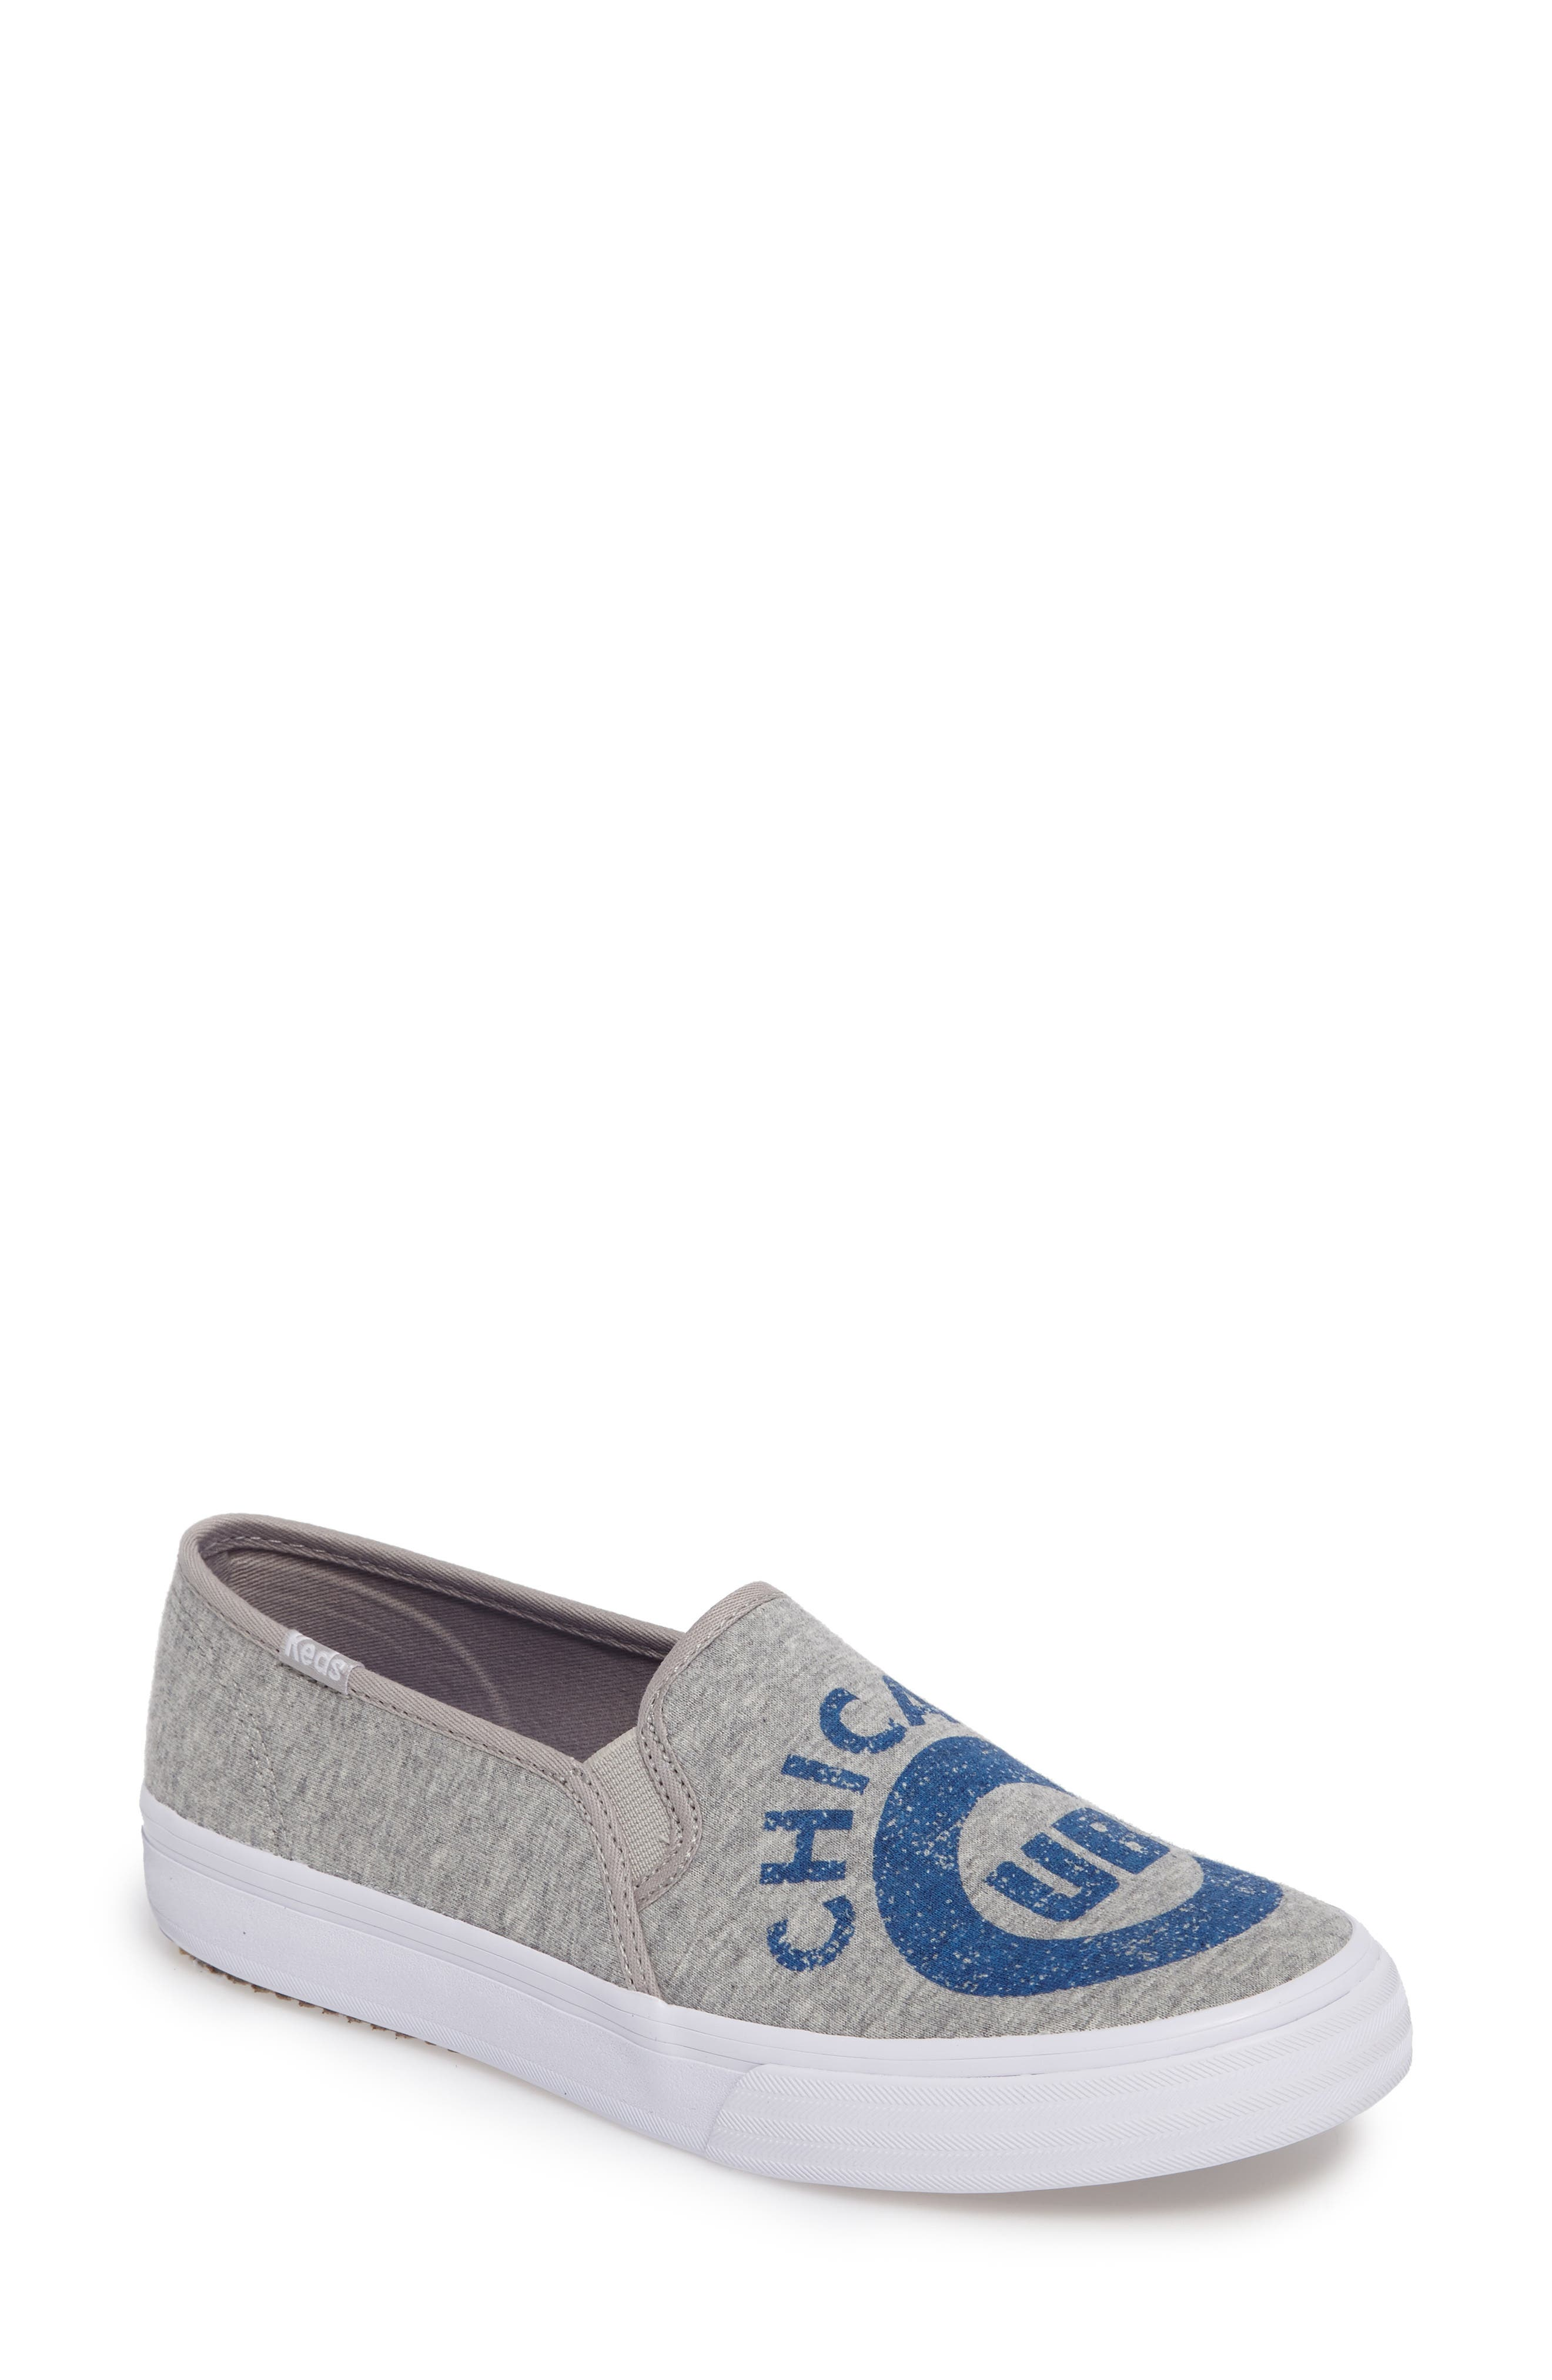 Keds Double Decker Baseball Team Jersey Slip-On Sneakers (Women)